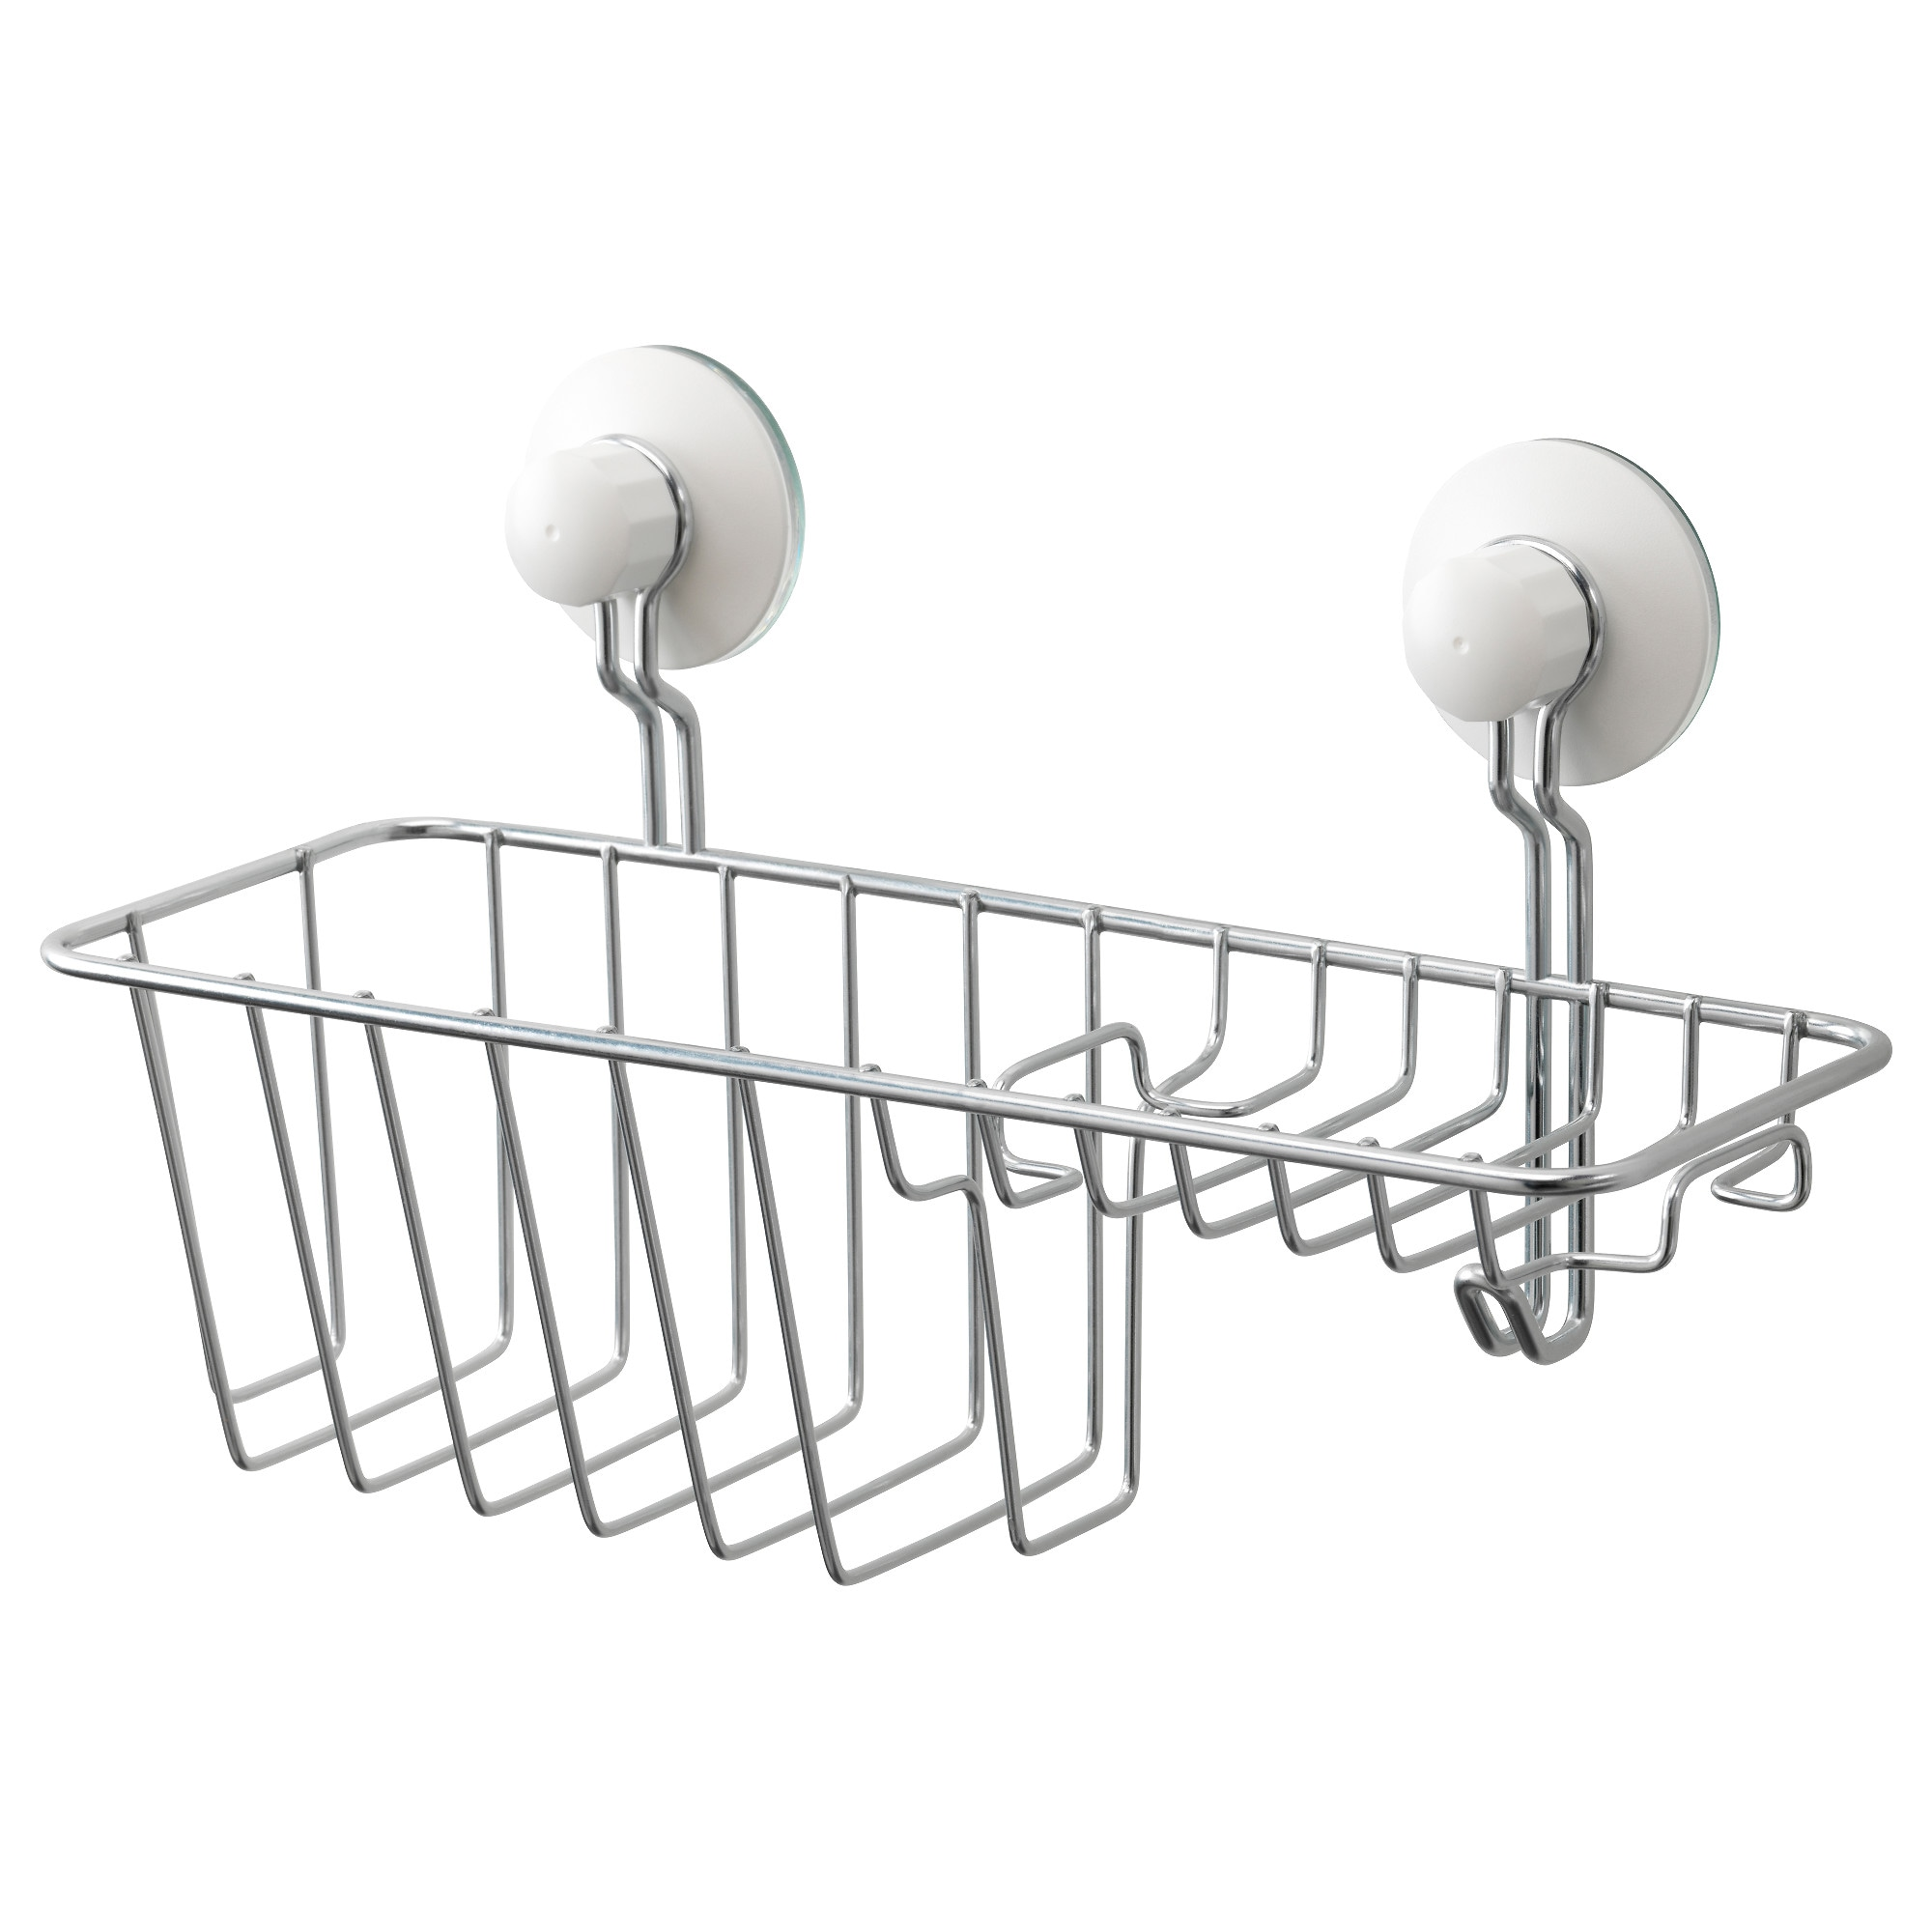 Bathroom Accessories With Suction Cups bathroom sets & accessories - ikea